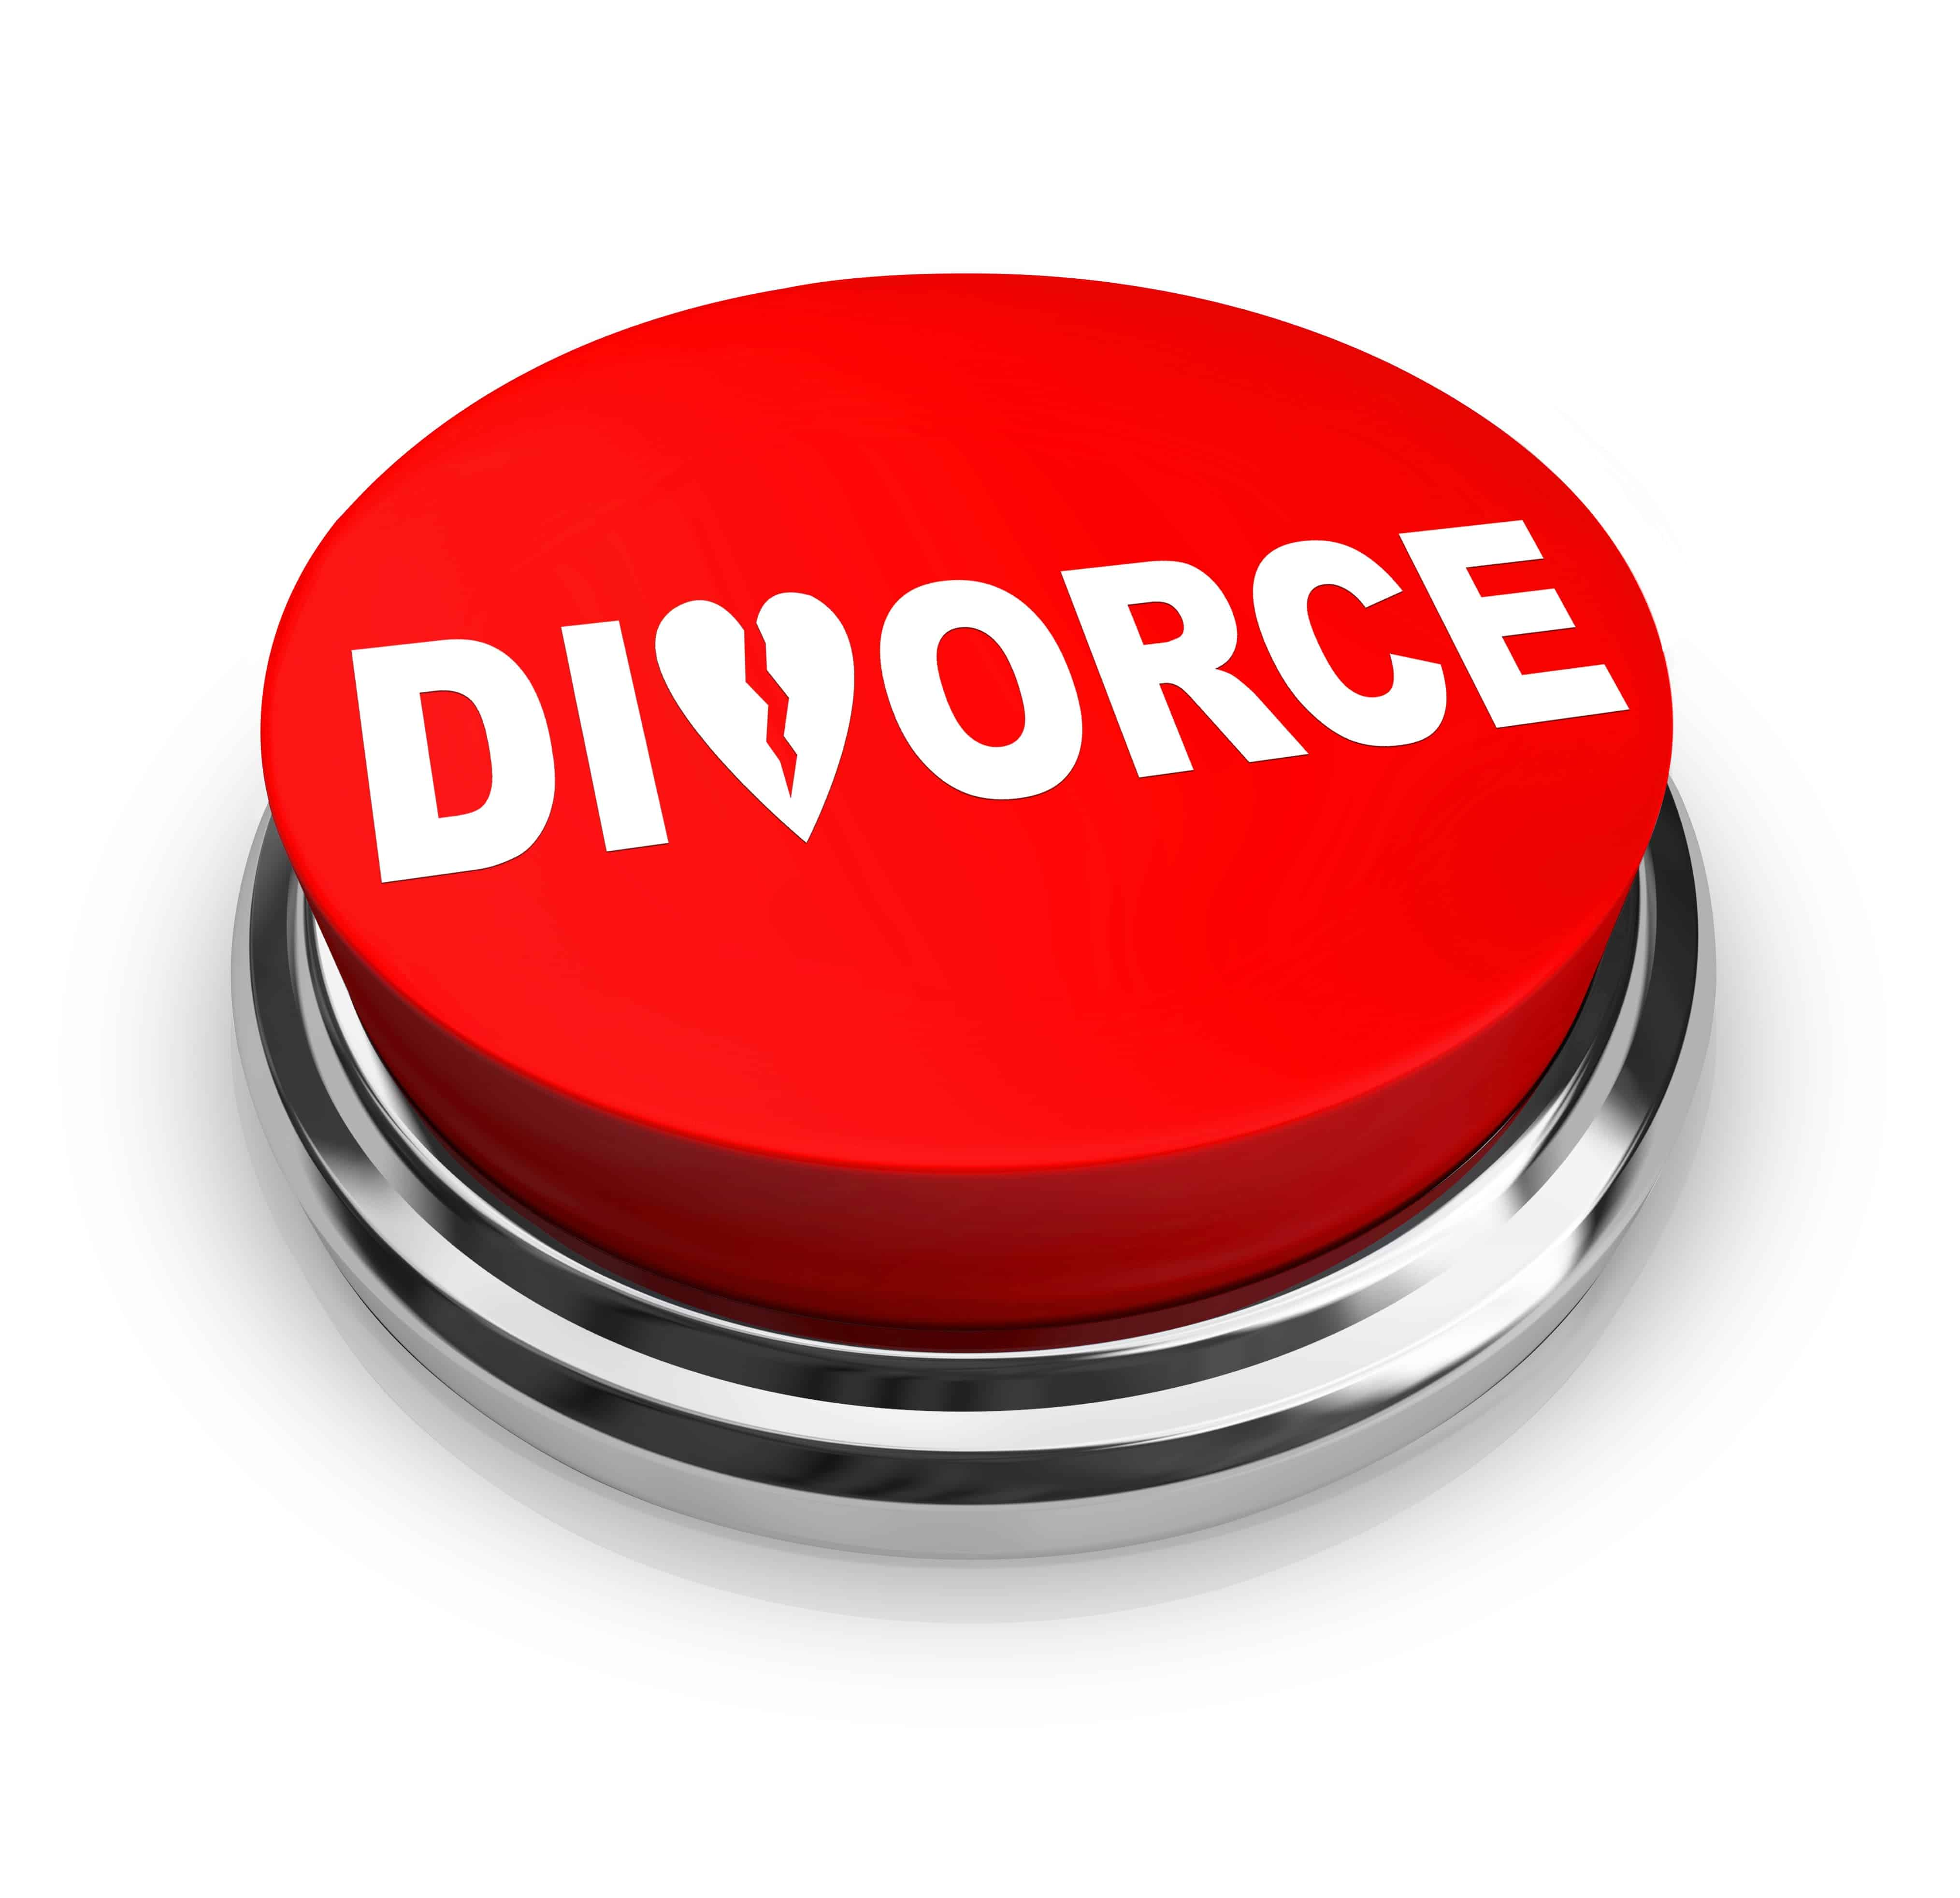 50 Pieces Of Divorce Advice Your Lawyer May Not Have Told You